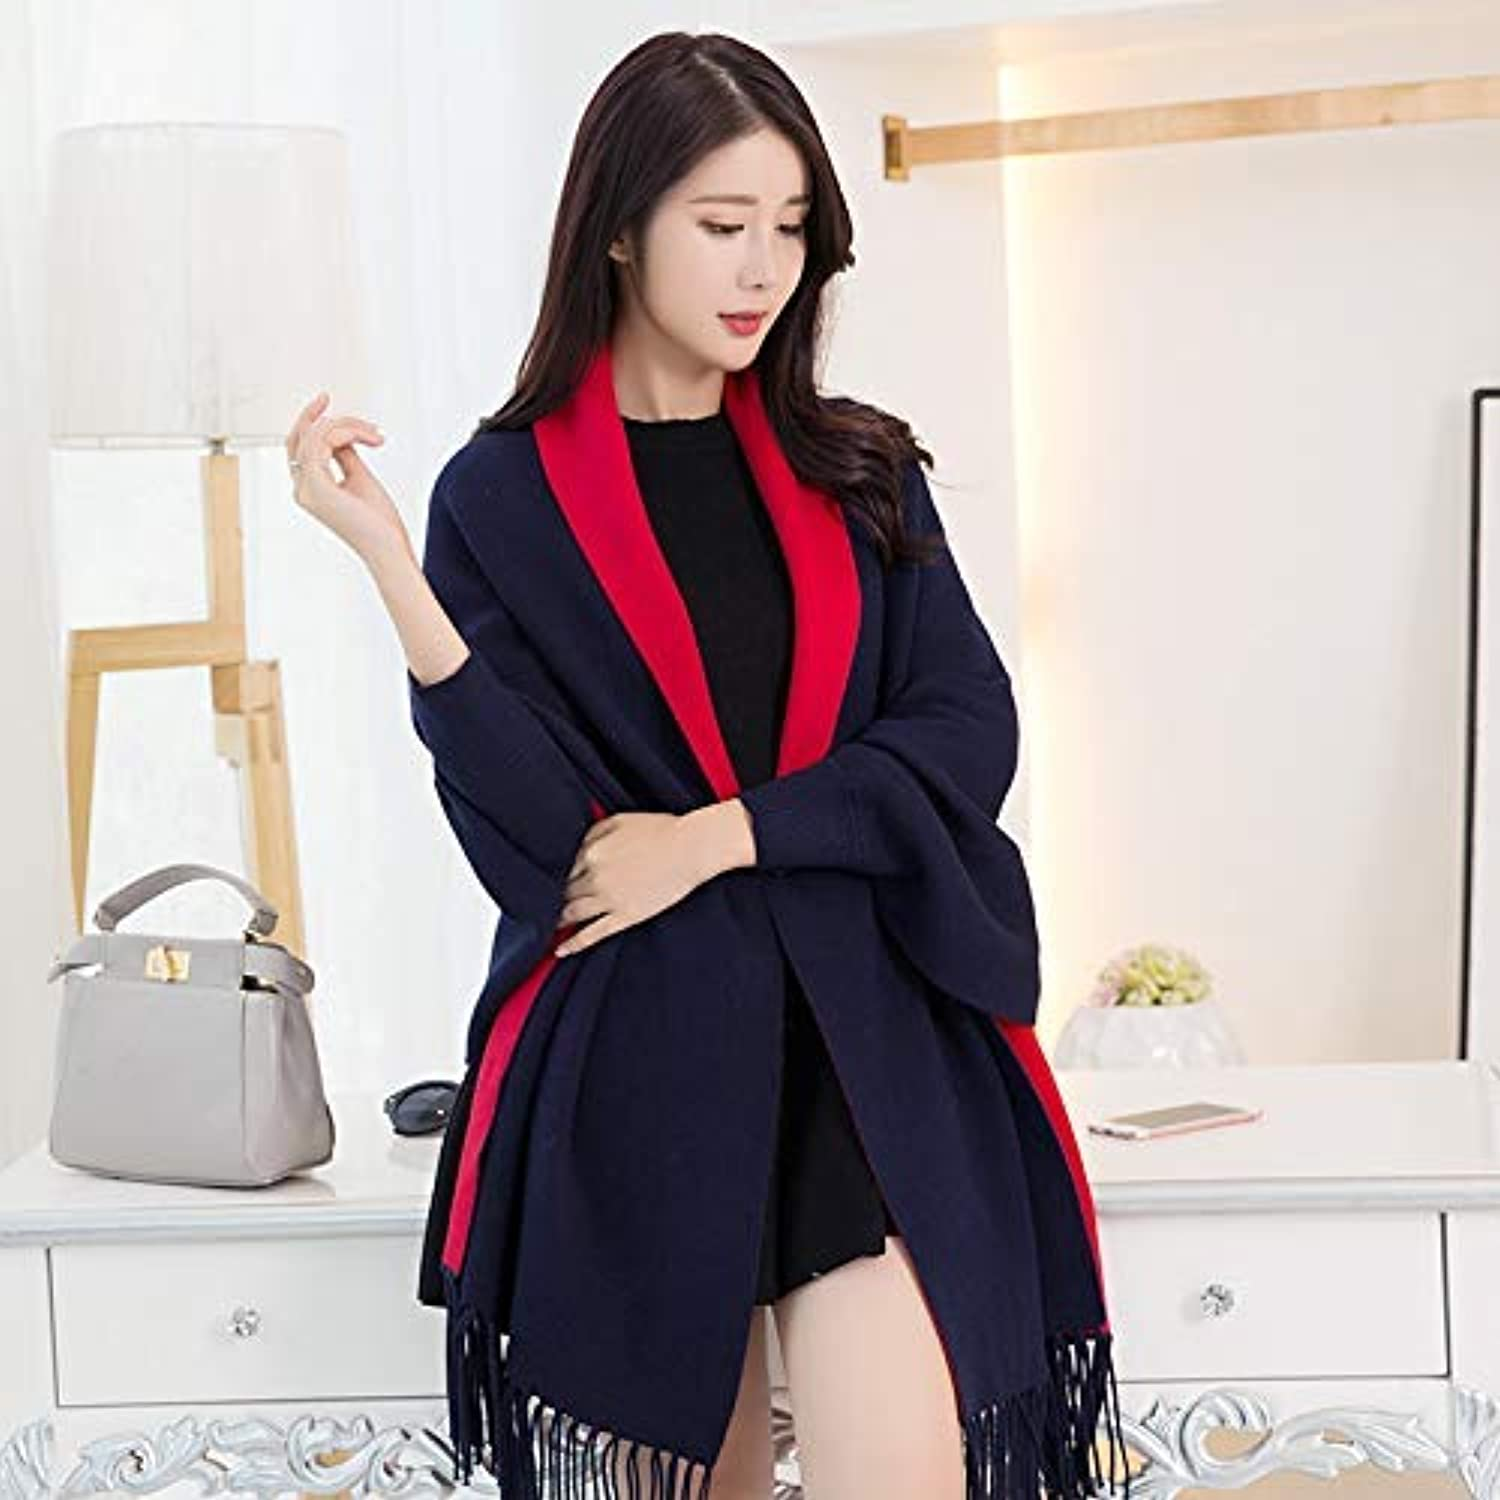 Scarf for Gift AirConditioned Room with Sleeves Shawl Female Summer Cloak Cloak Coat Scarf Dualuse Wild Autumn and Winter Super red (color   Black) Classic Scarf (color   Black)